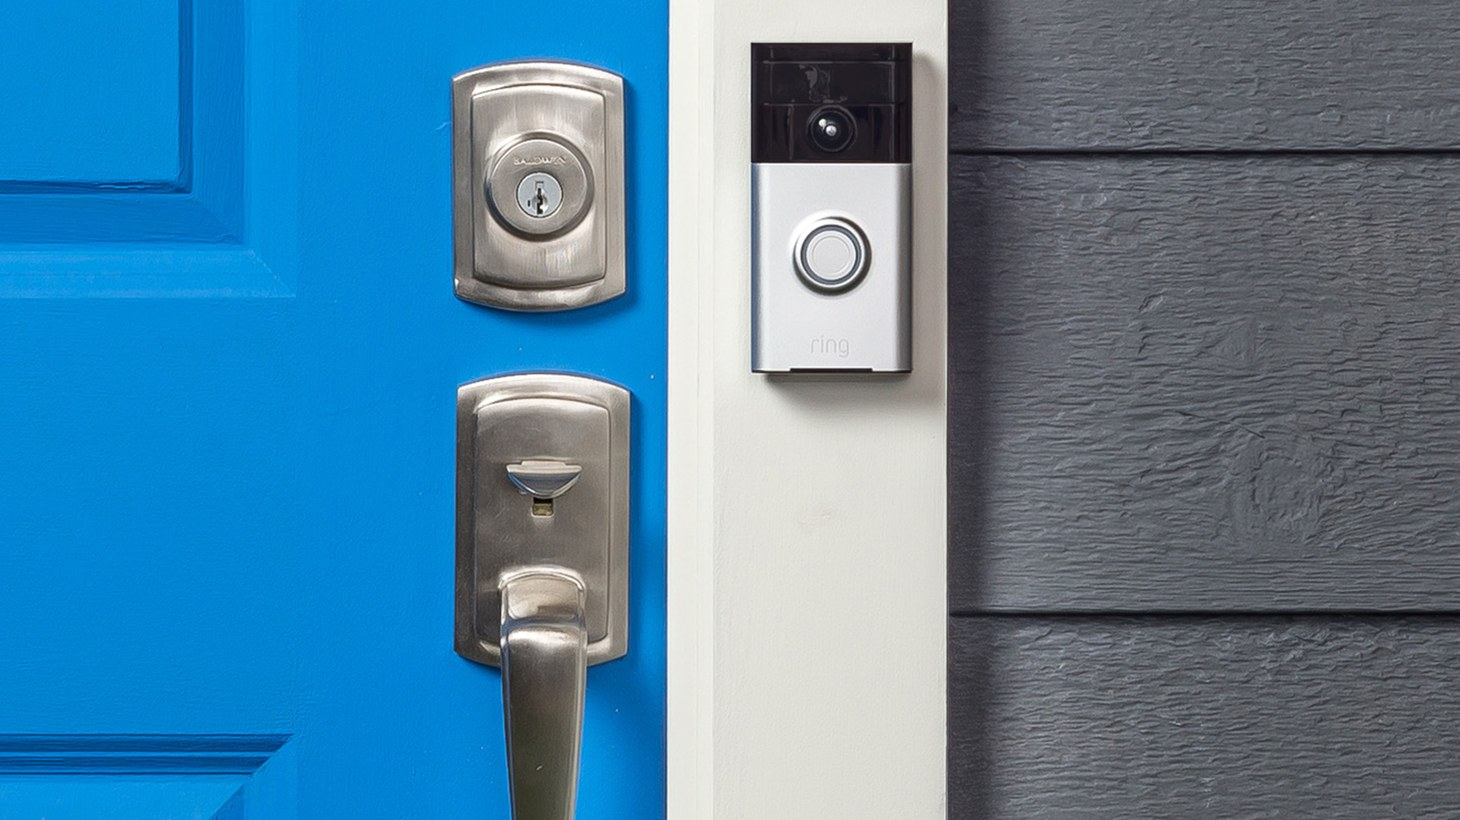 A Ring video doorbell is mounted next to the front door of a house. Even though the footage can help law enforcement, it also poses risks.